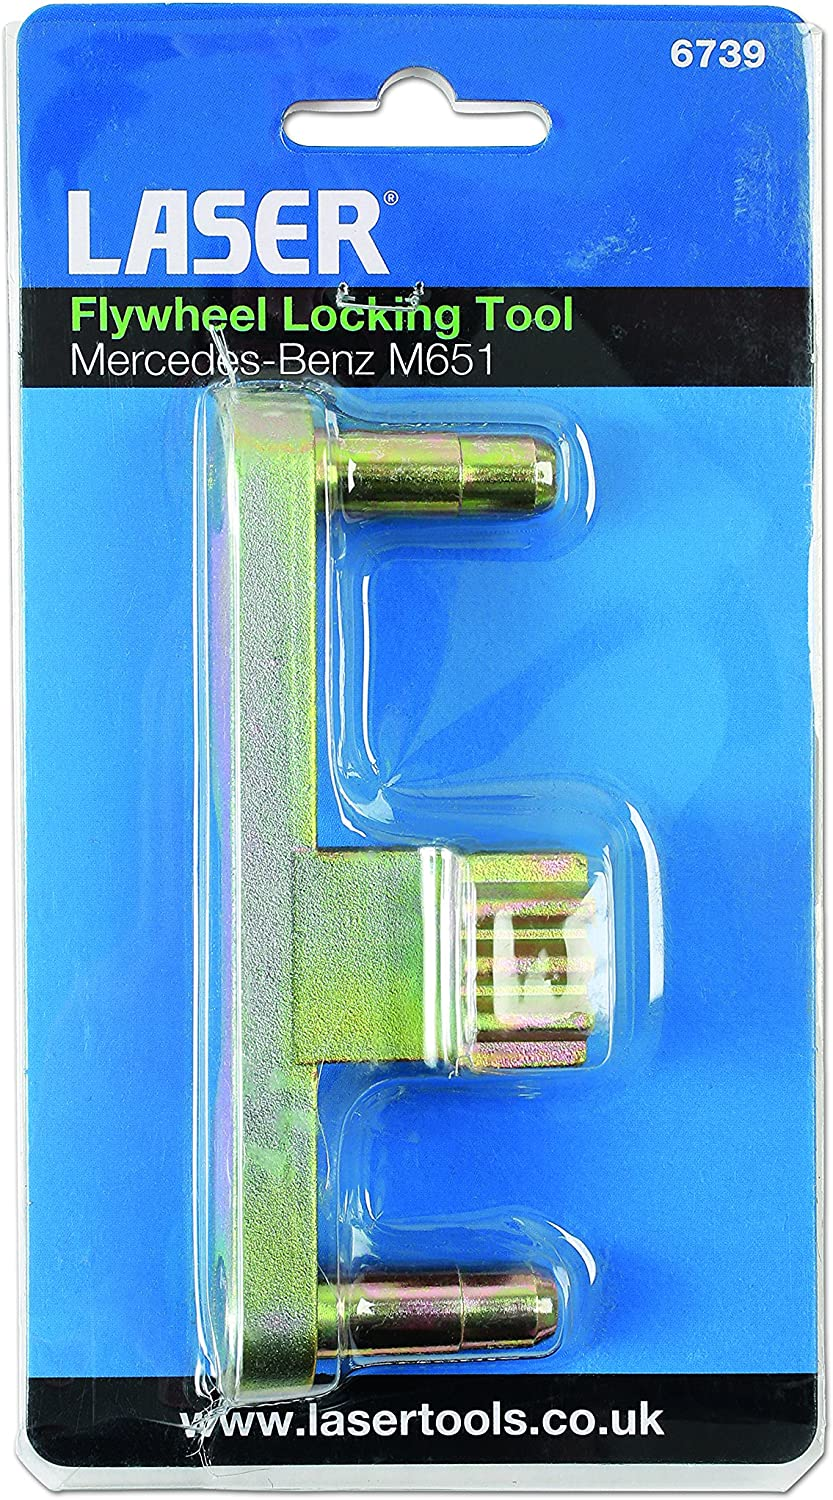 Laser Tools LAS6739 6739 Flywheel Locking Tool-Mercedes Benz M651